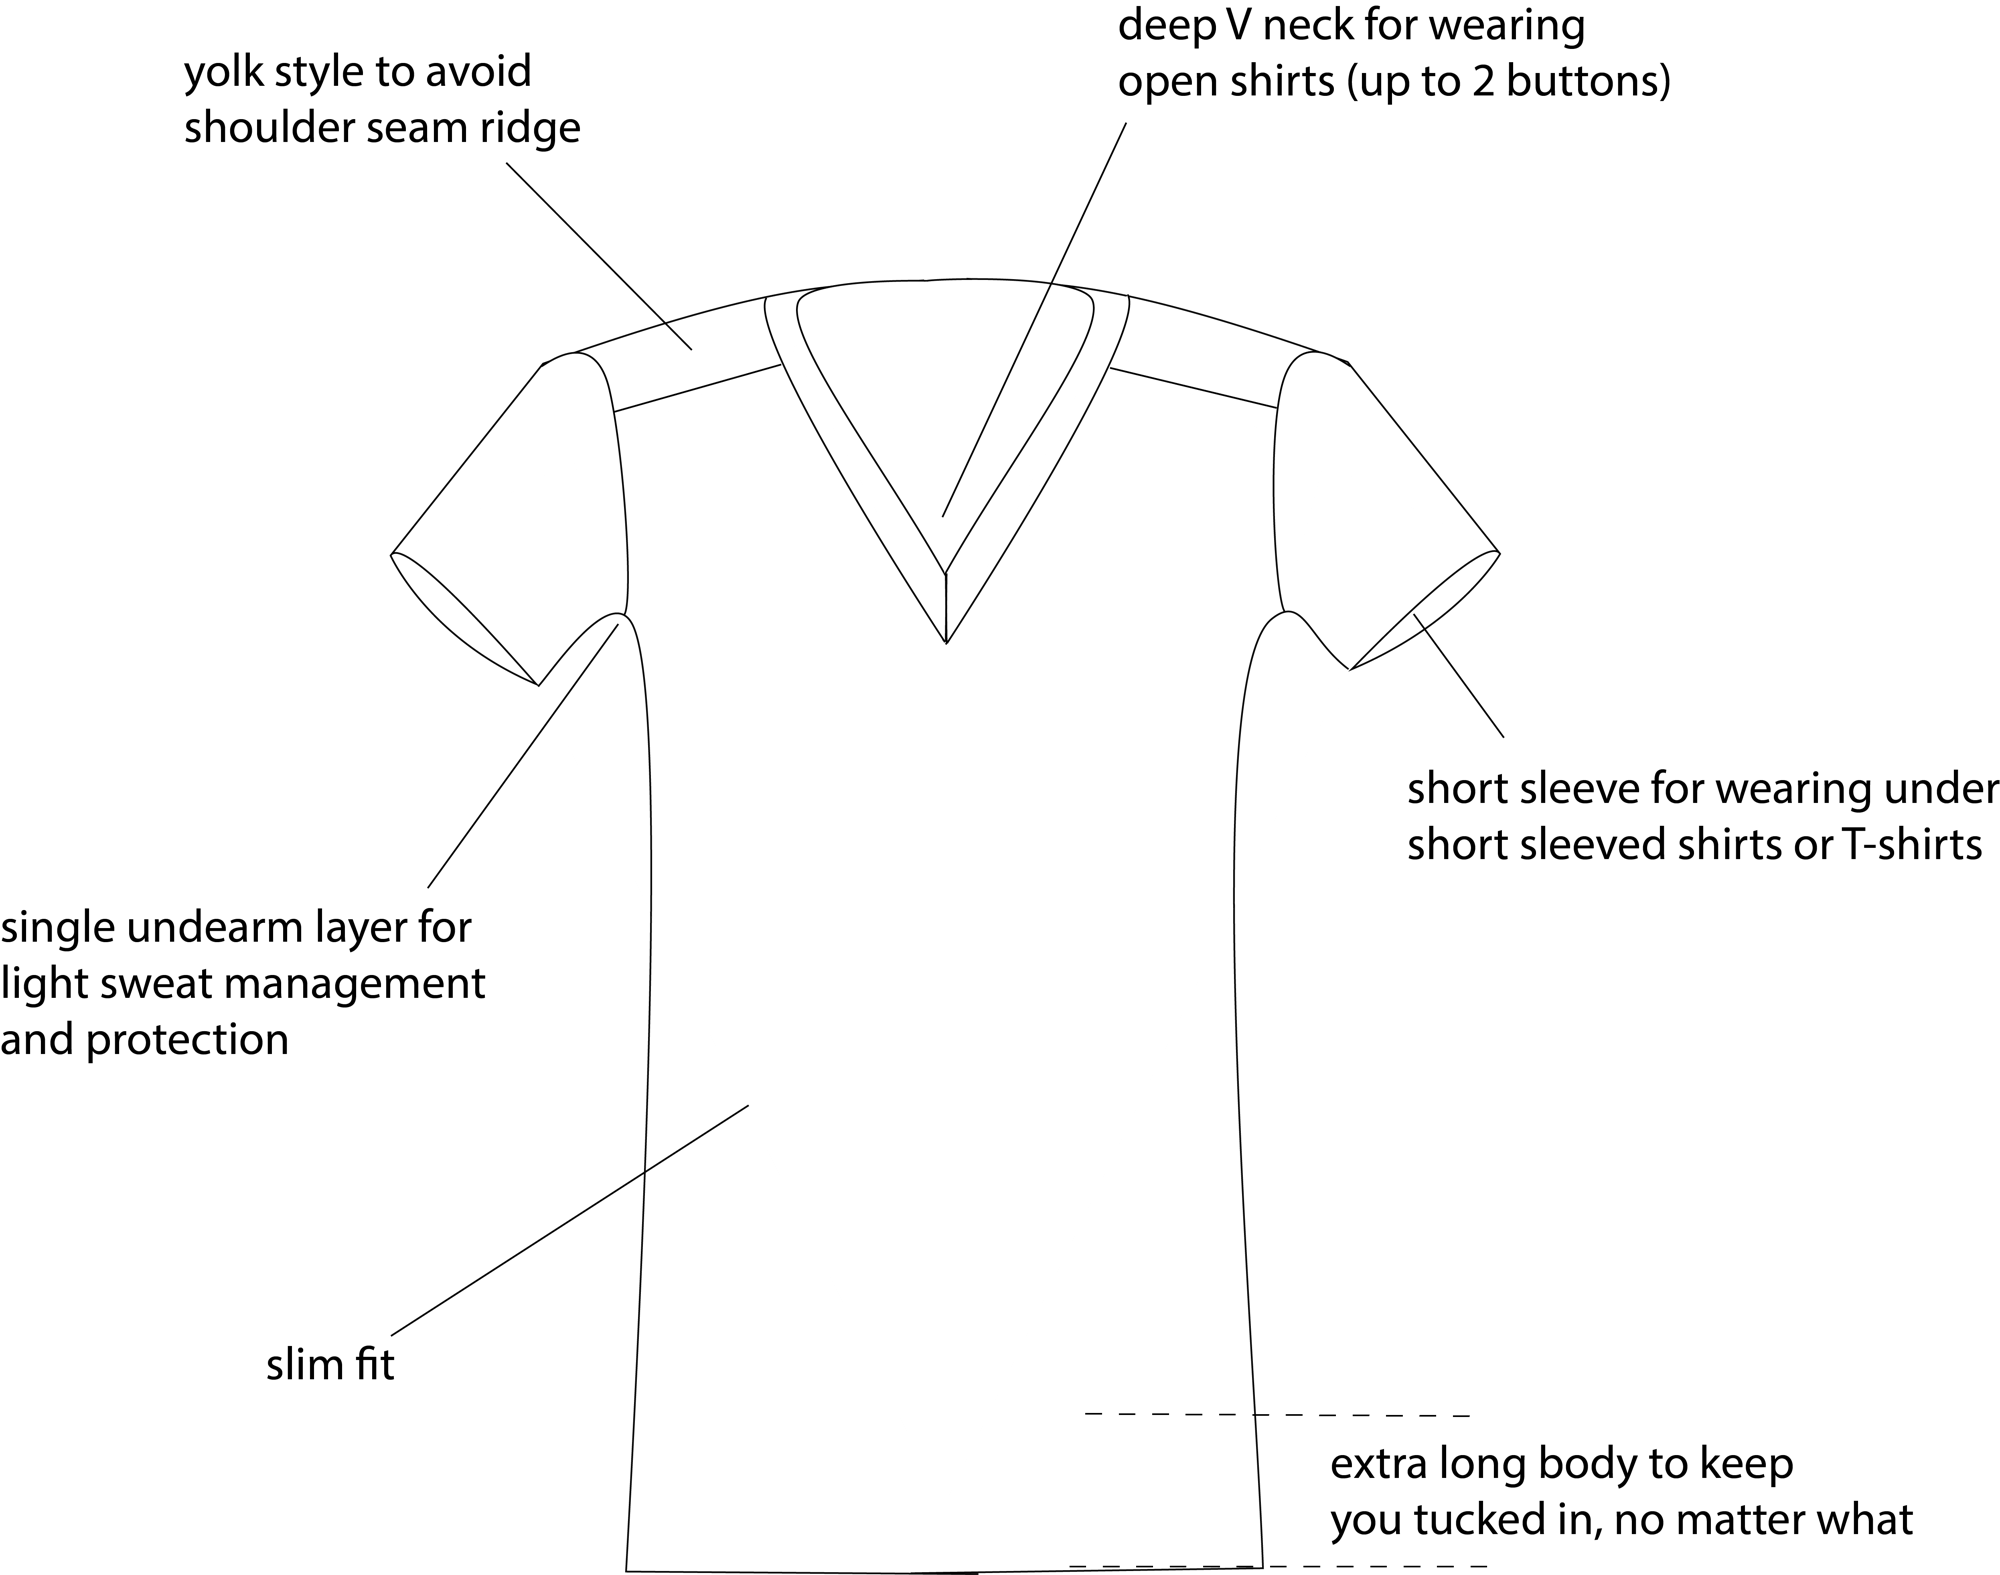 Drawing showing the design and features of the Chester V-neck undershirt